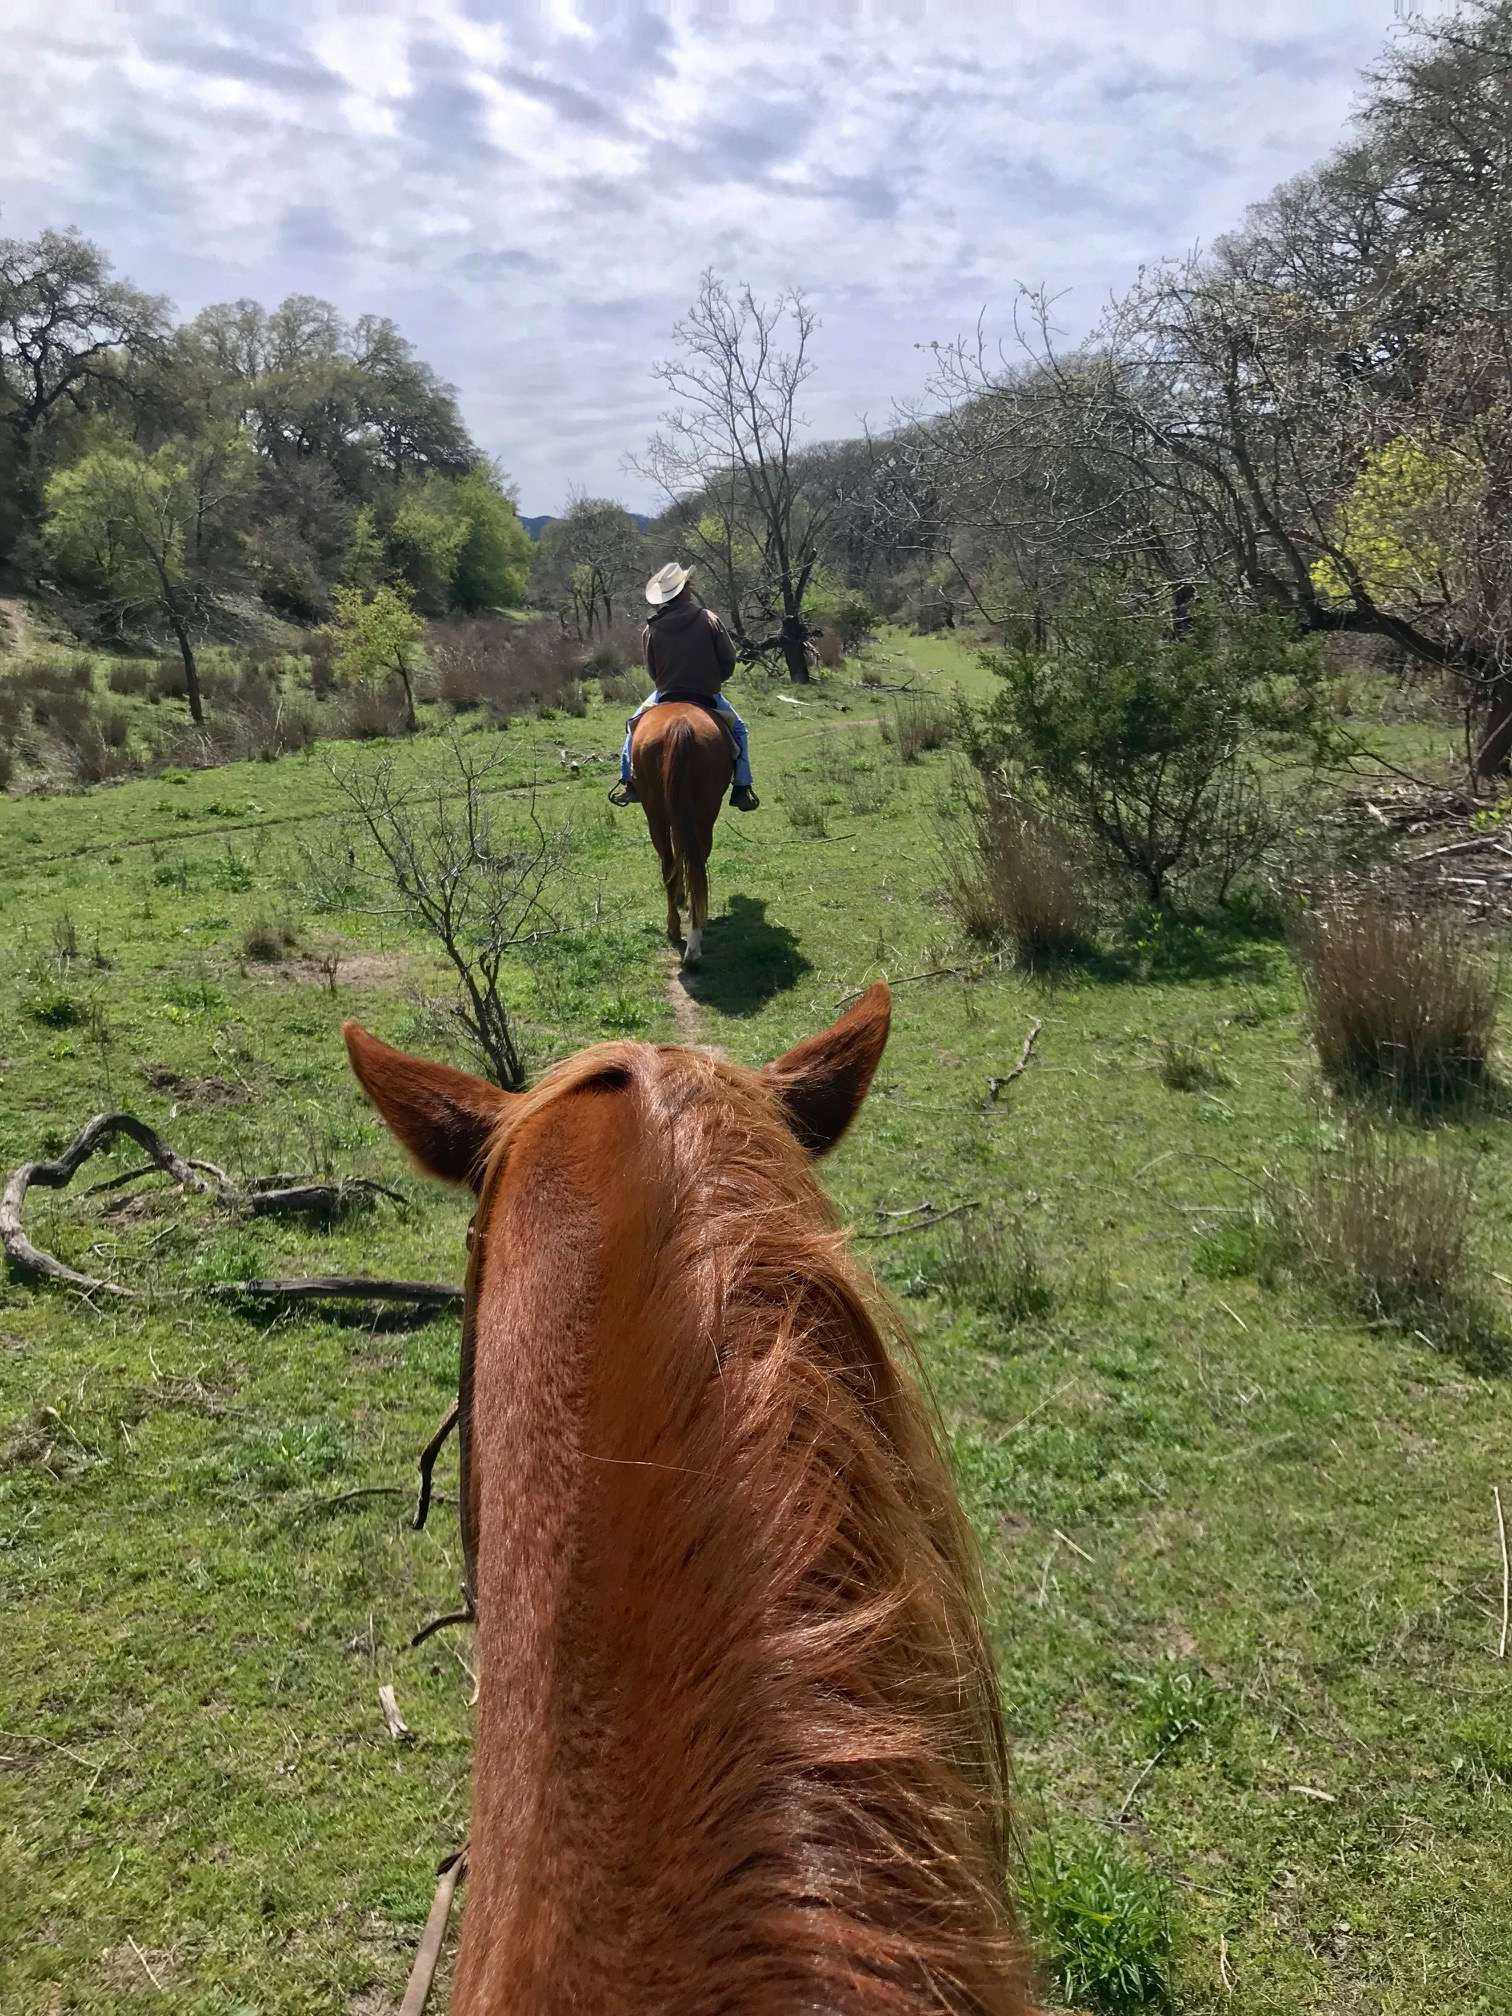 Mayan Dude Ranch Review Texas SF Travel Blogger Lorna Ryan Horses